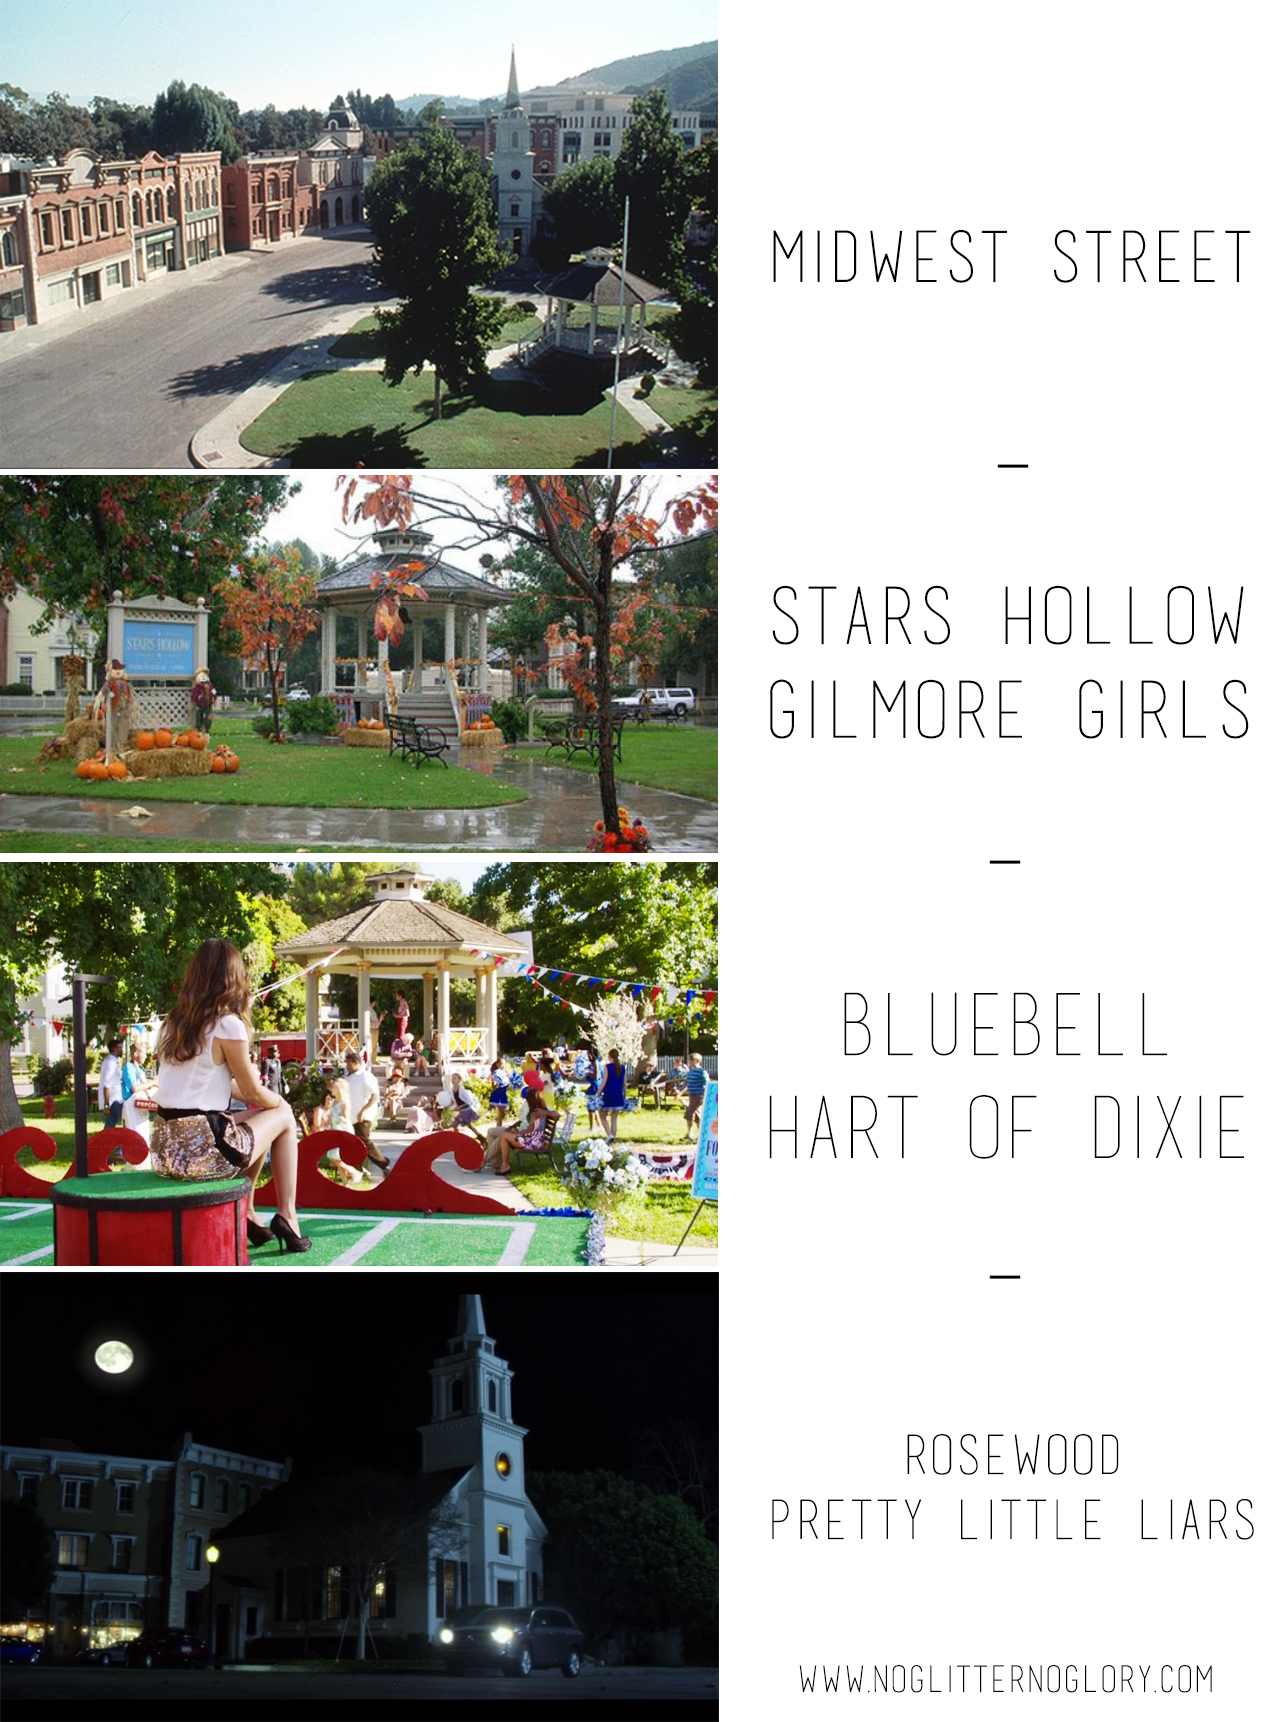 10 fun facts about Gilmore Girls // Midwest street - Also the town square of Pretty Little Liars and Hart of Dixie